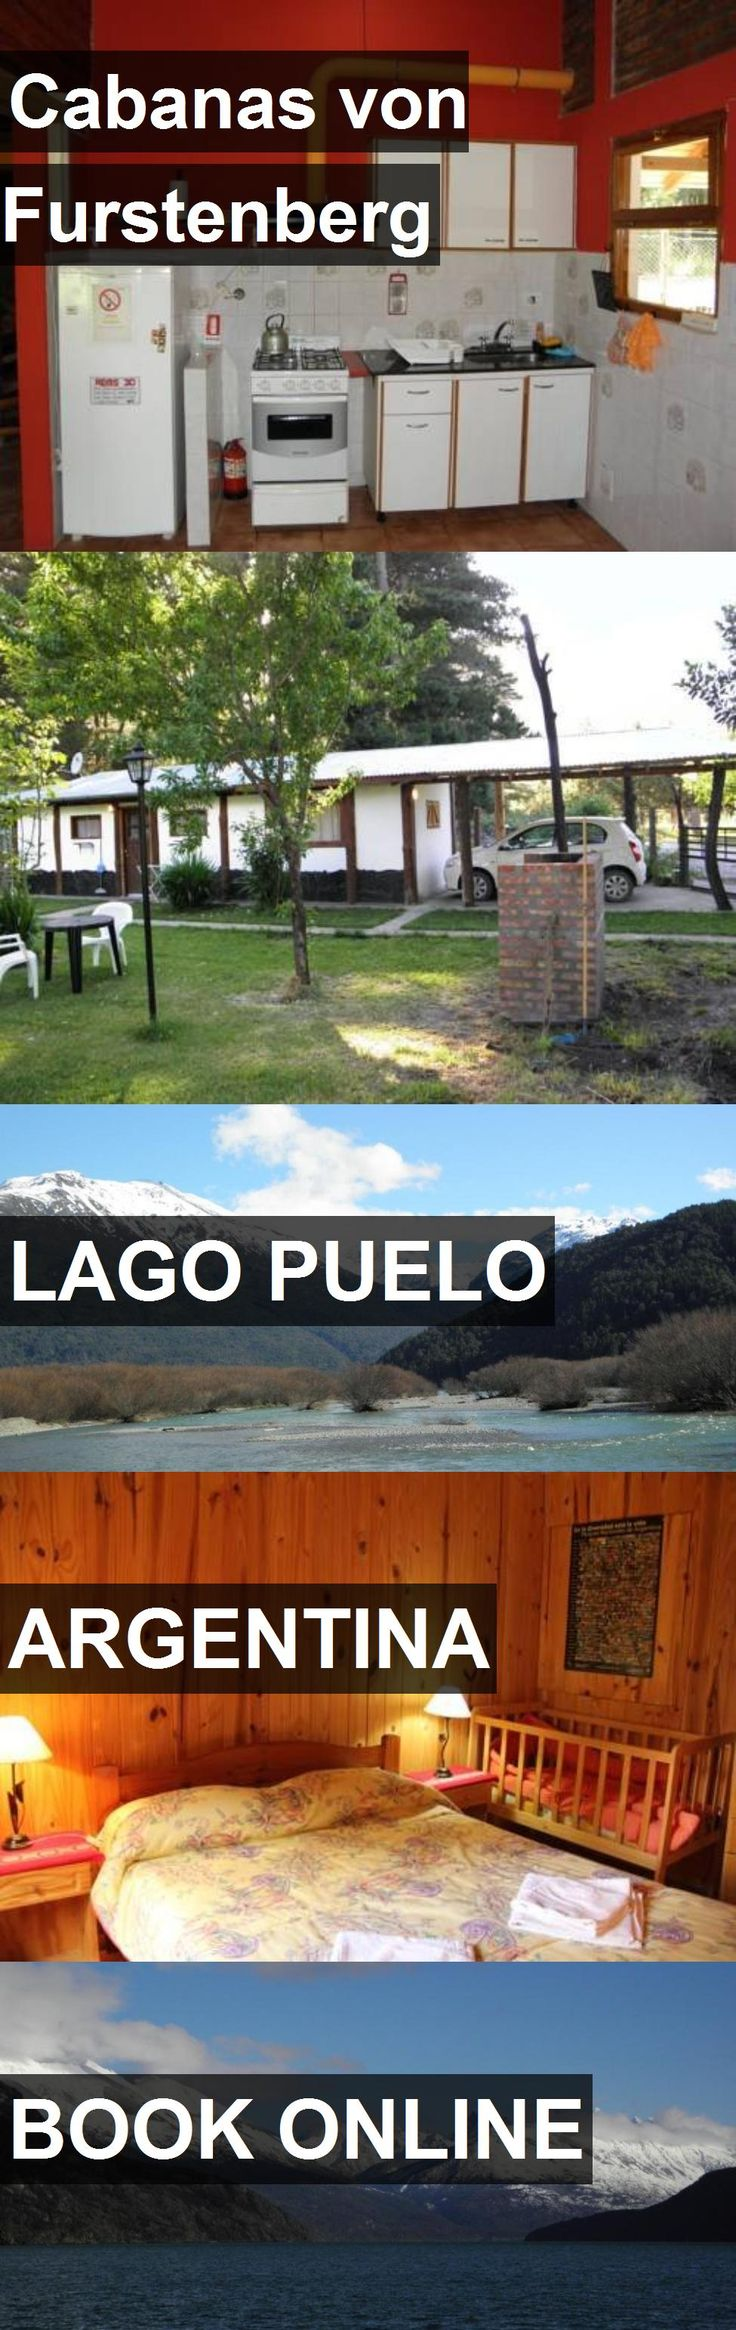 Hotel Cabanas von Furstenberg in Lago Puelo, Argentina. For more information, photos, reviews and best prices please follow the link. #Argentina #LagoPuelo #CabanasvonFurstenberg #hotel #travel #vacation